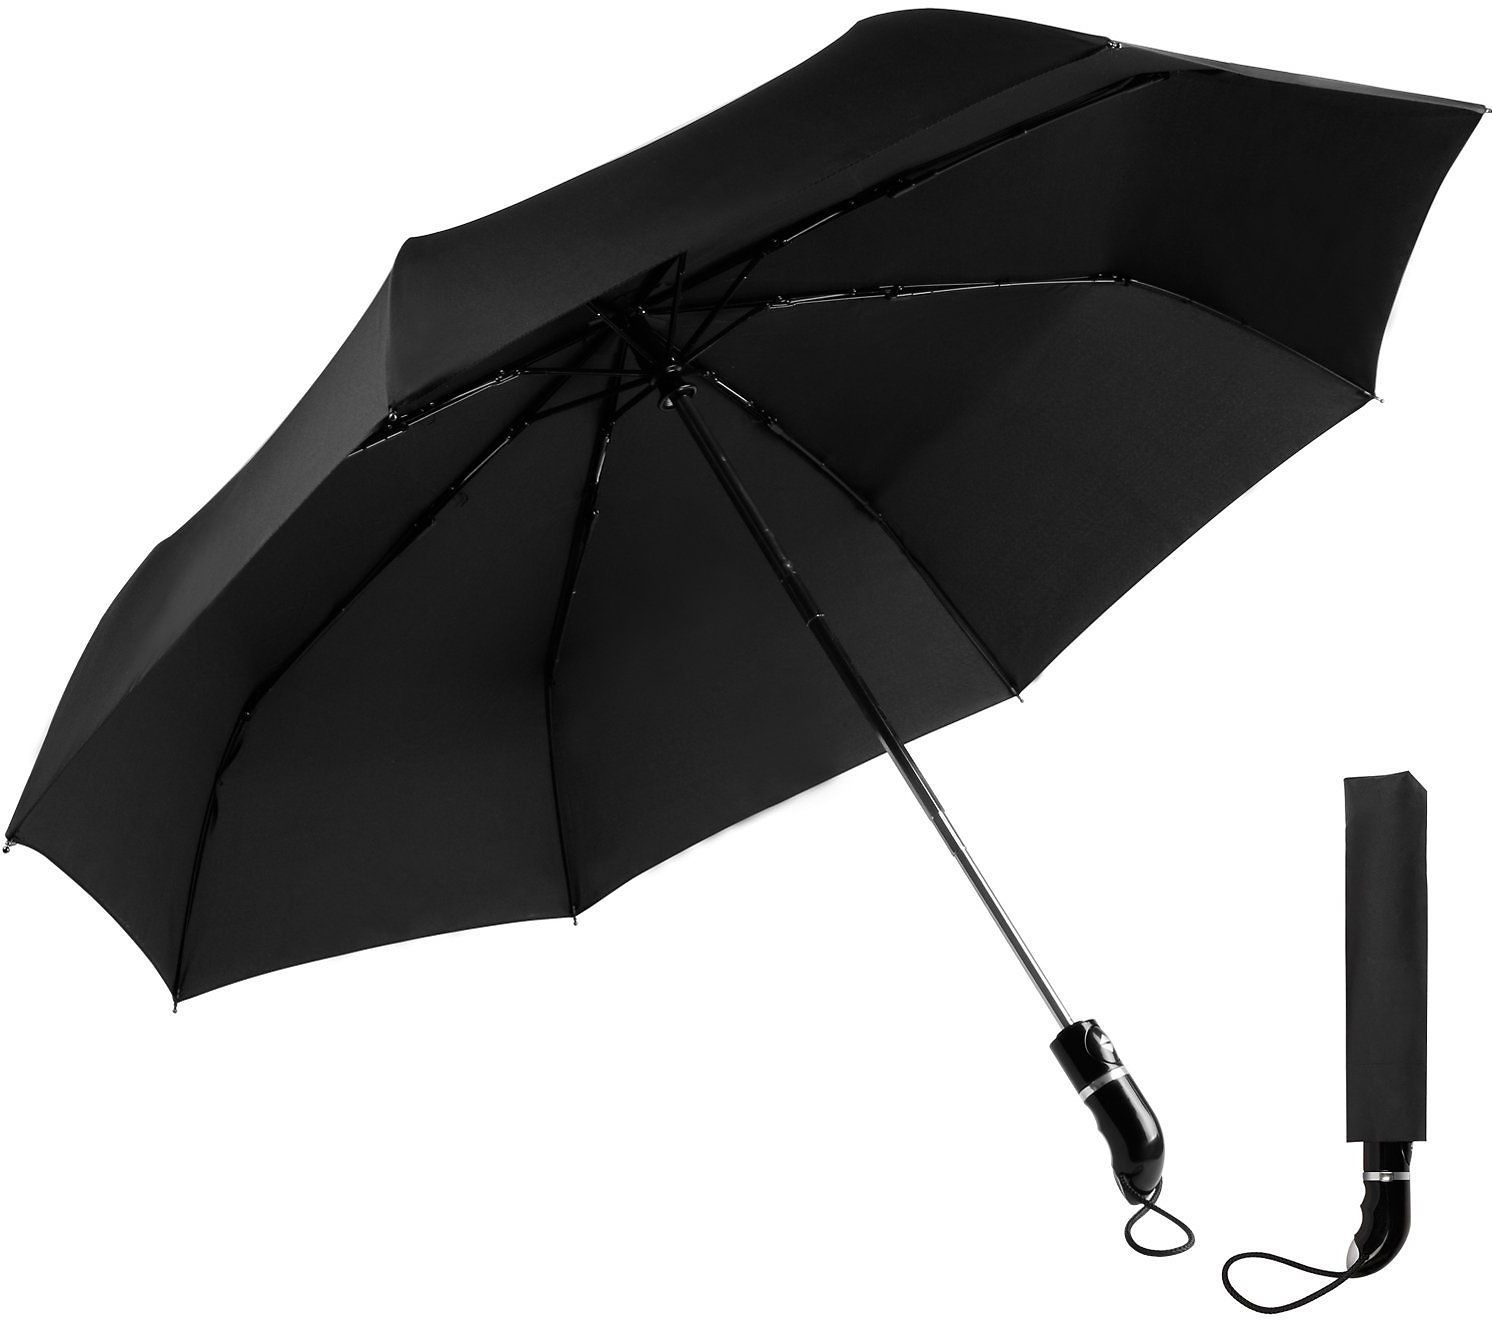 "➡OXA ""Unbreakable"" Windproof Travel Umbrella ➡http://buff.ly/2goBgmn 🔥🔥Use code: YPRCBMWM for $10.99 🔥"